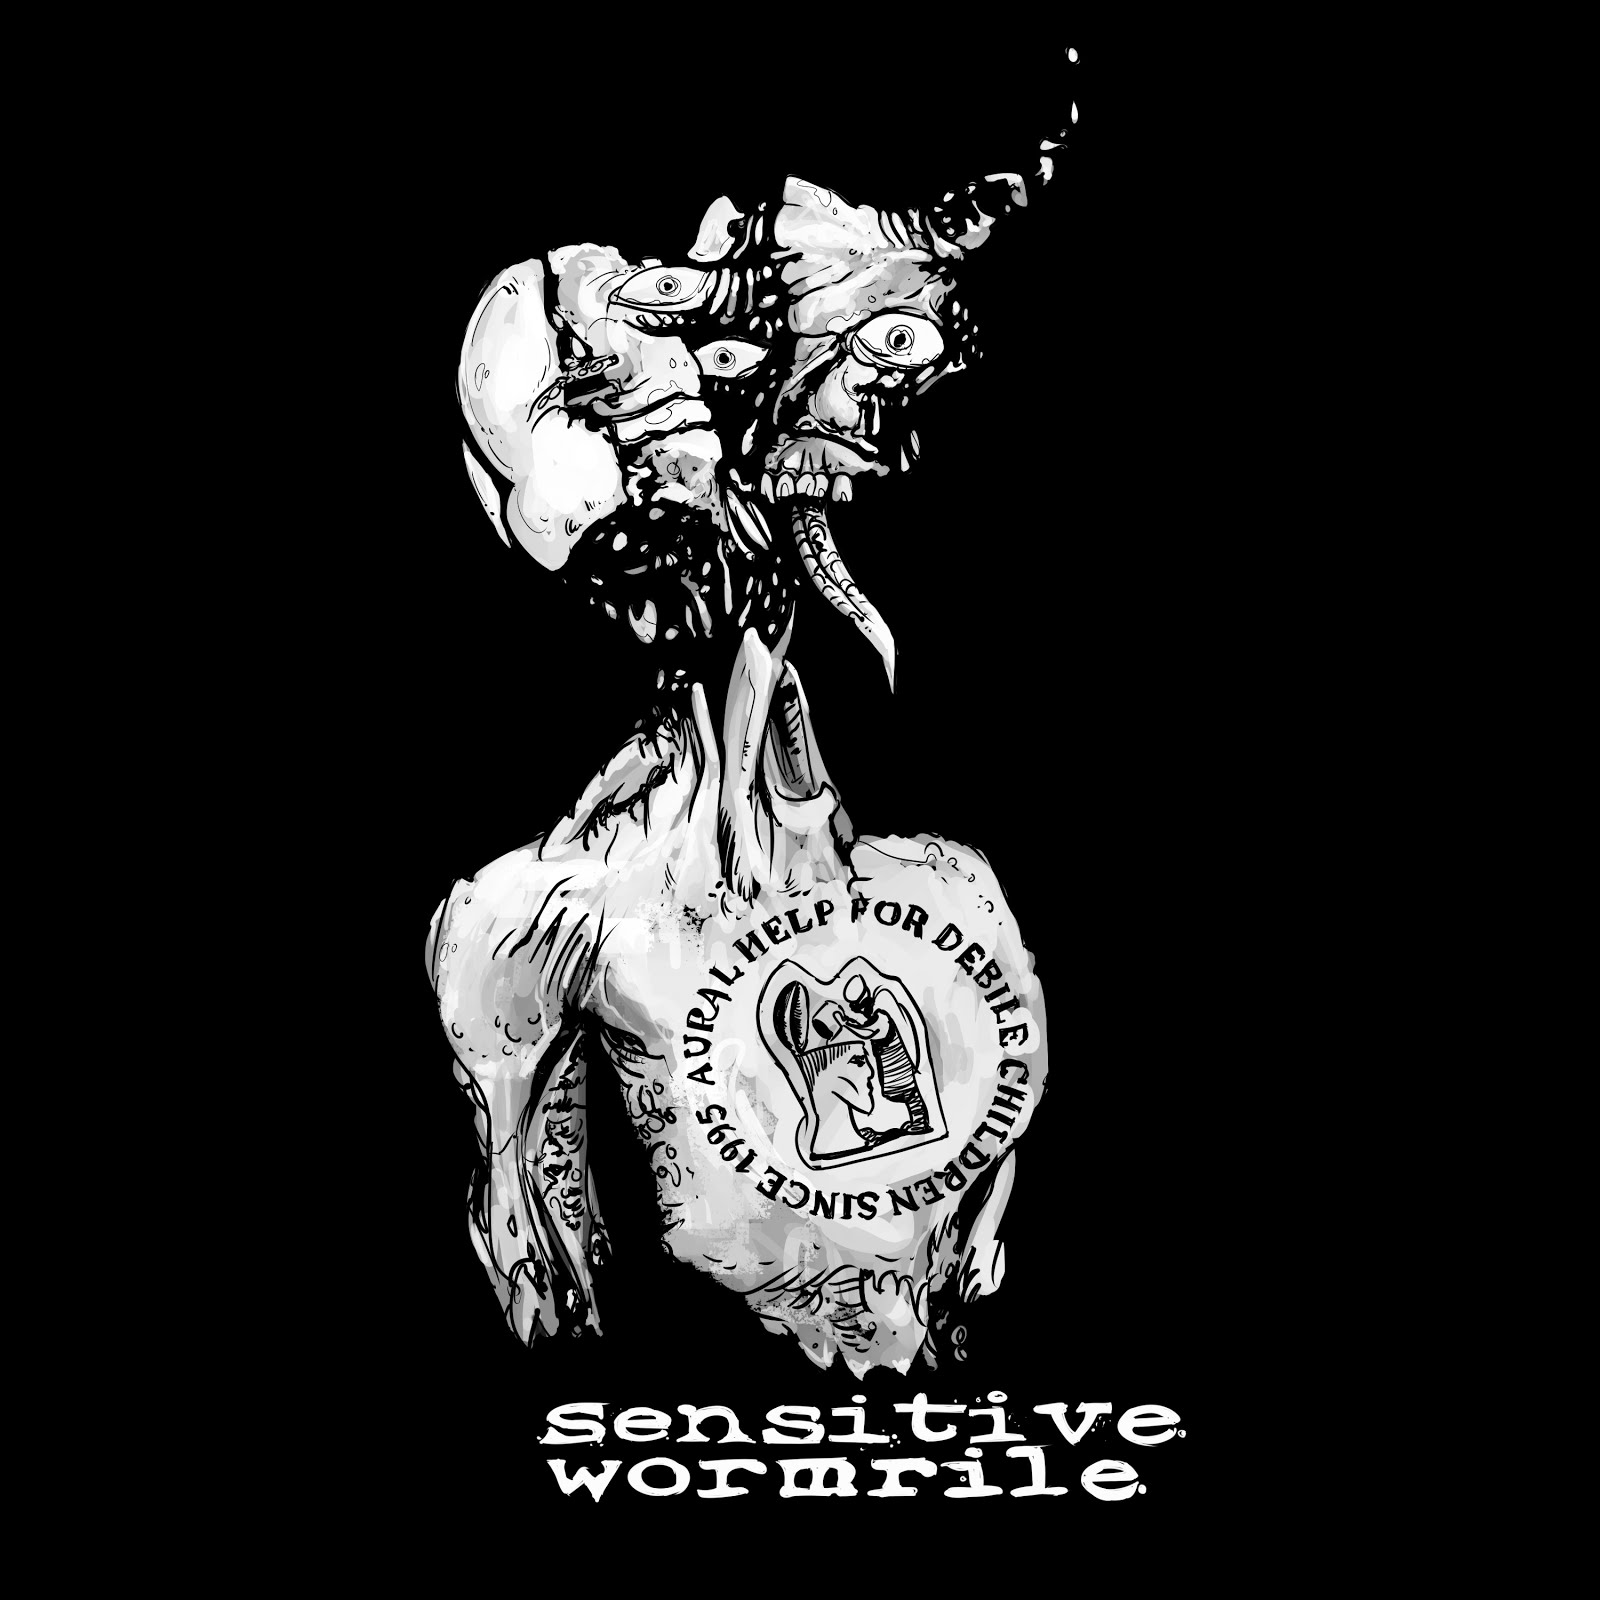 Sensitive Wormrile Releases